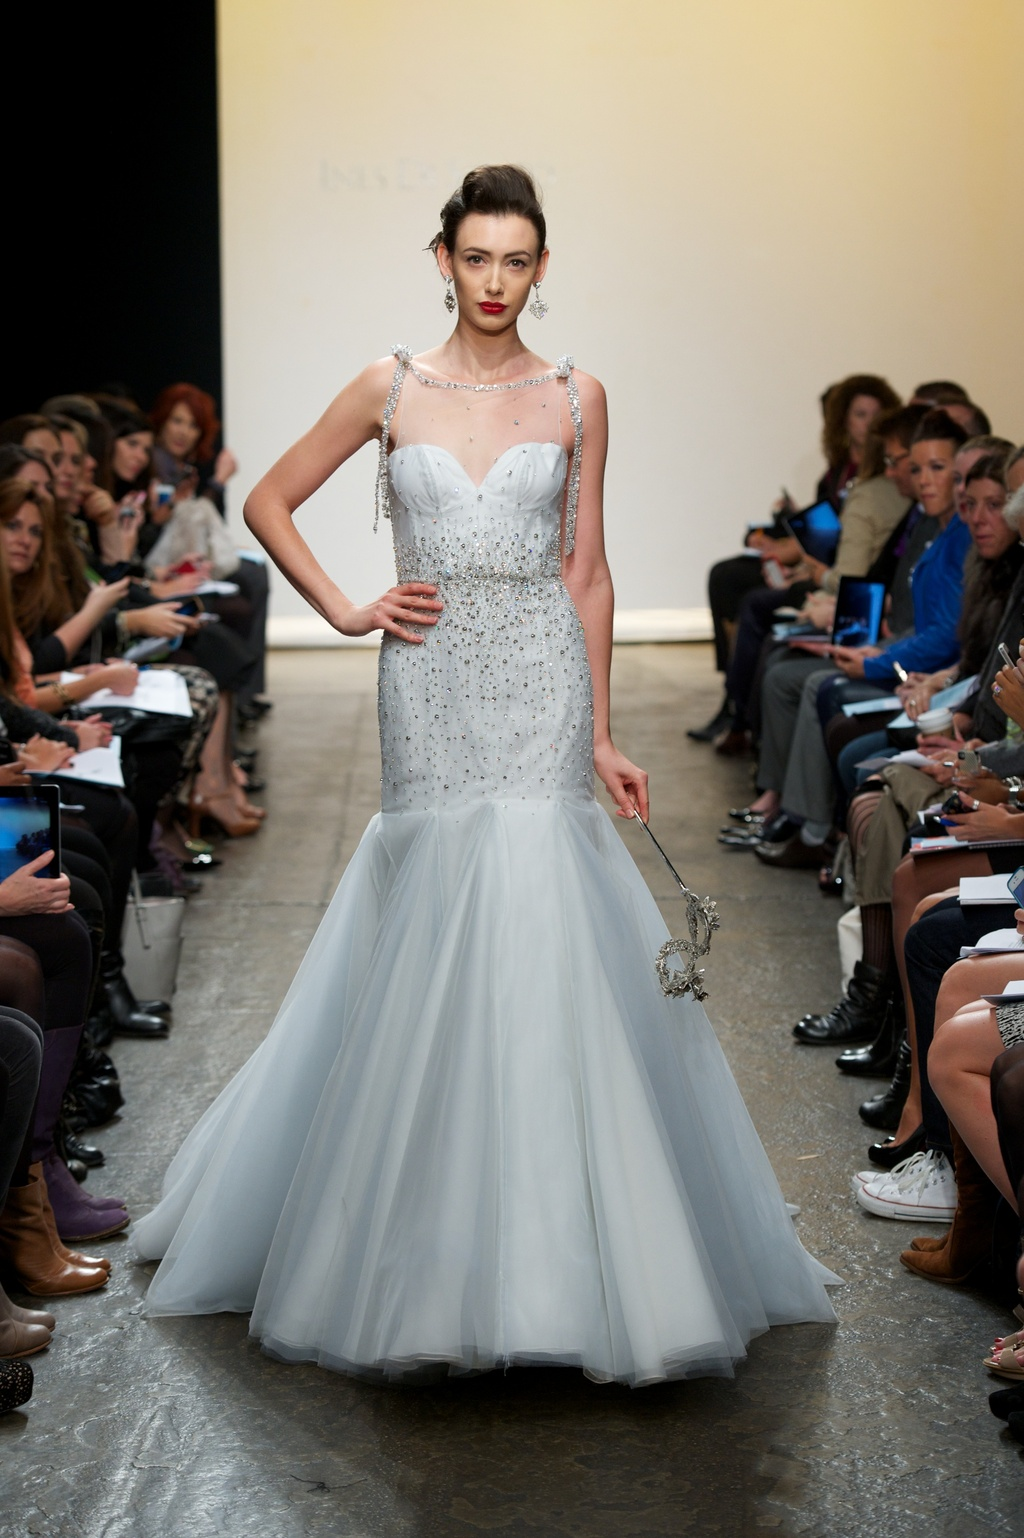 2013 Wedding Dress by Ines di Santo Lucrezia